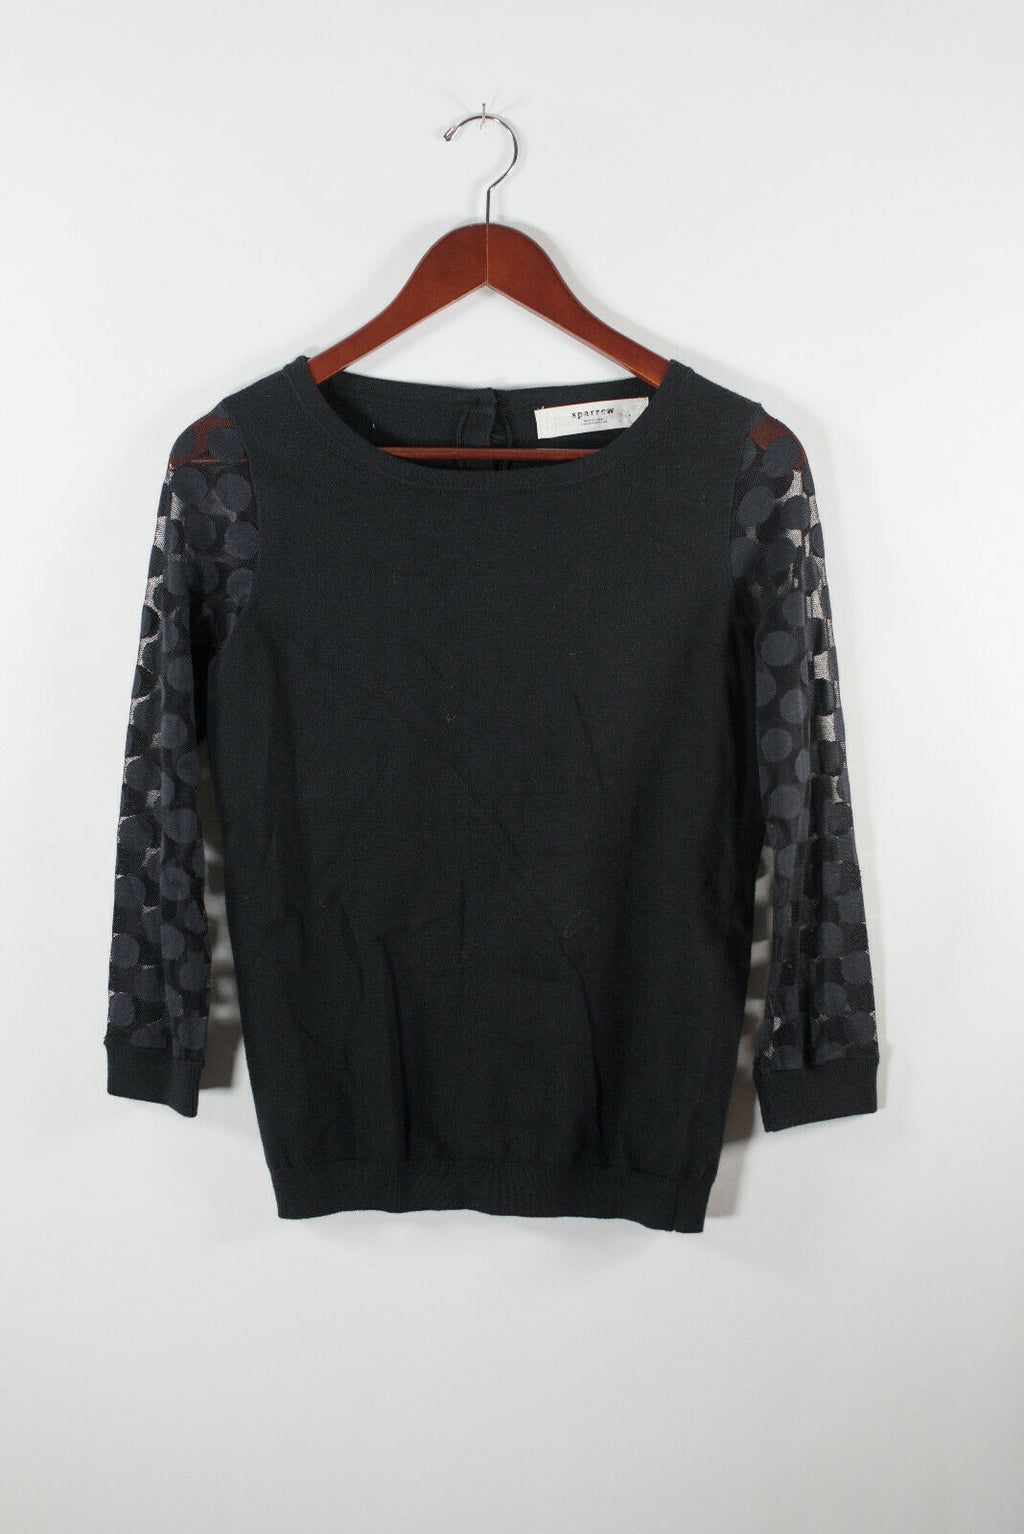 Anthropologie Sparrow Womens Small Black Blue Sweater Knit Polka Dot Sleeve Top